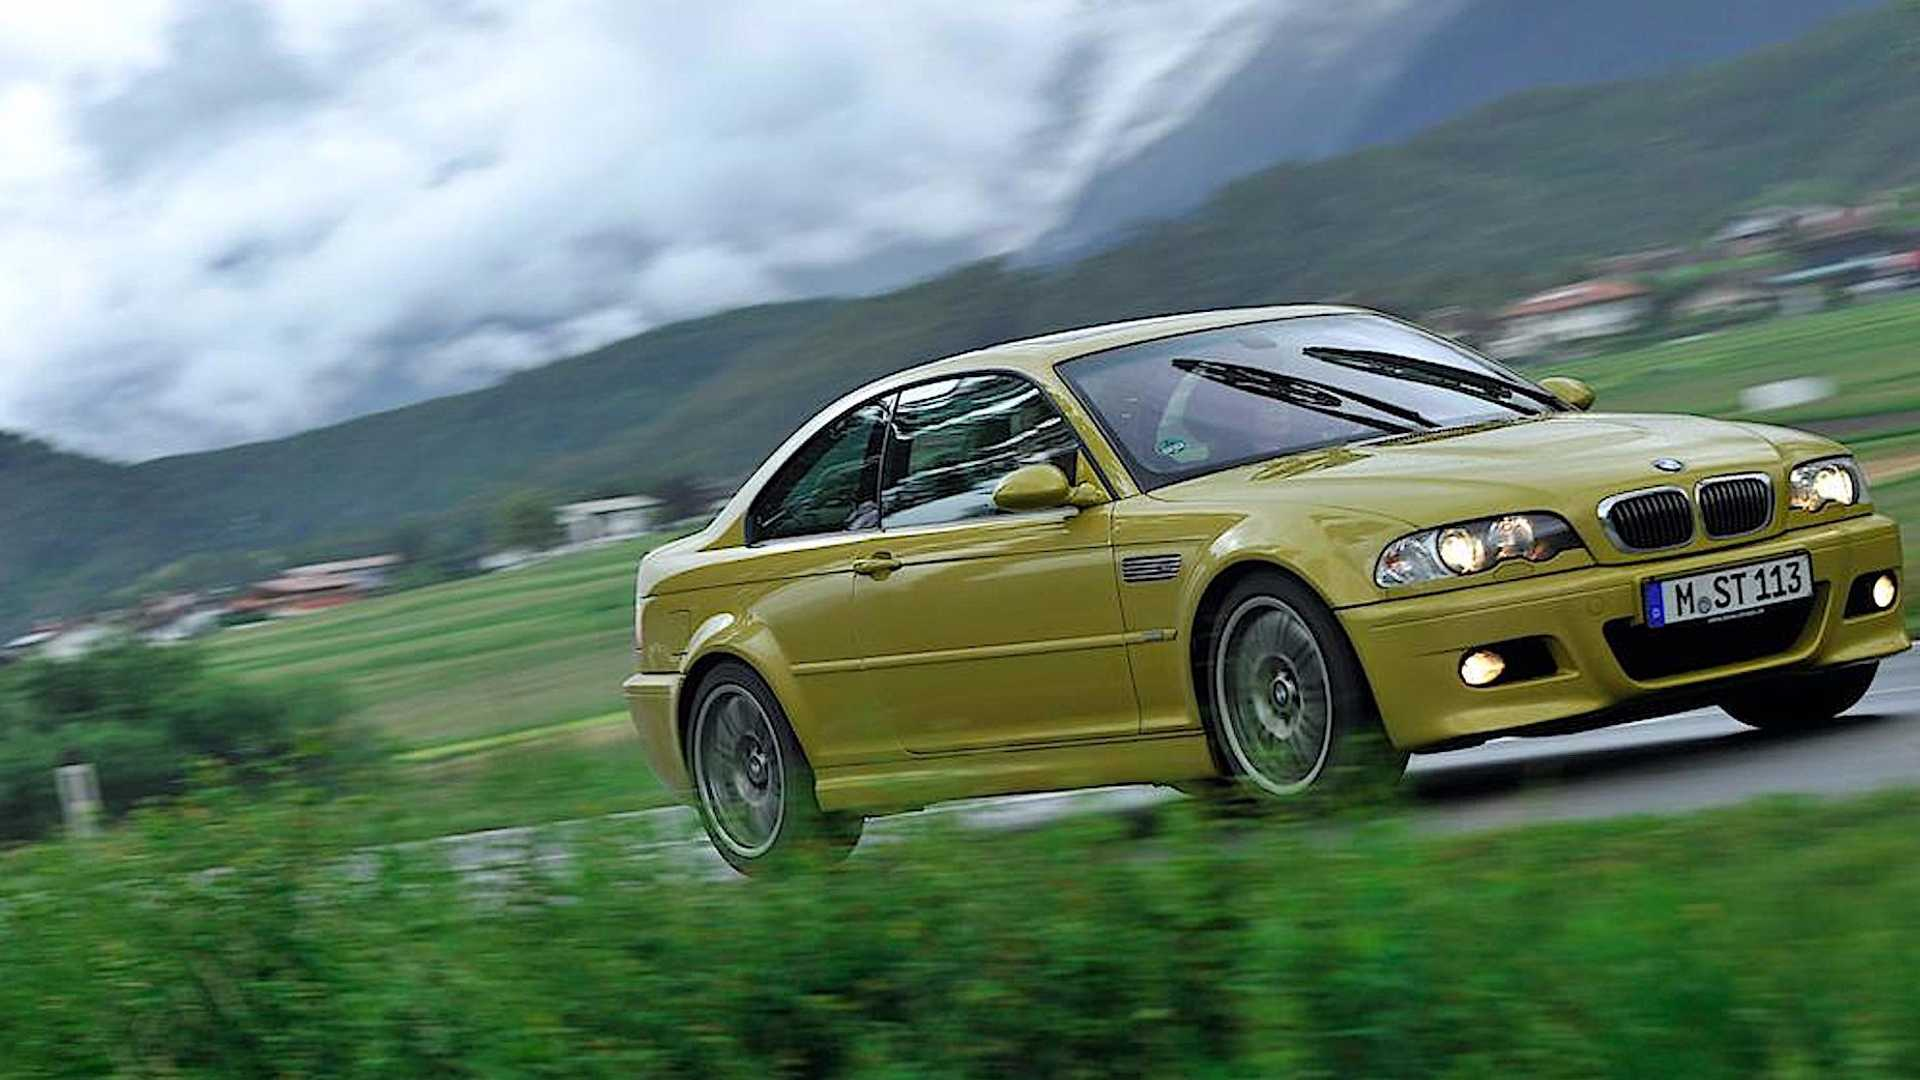 2002-2007 BMW M3 E46 Buying Guide | Motorious